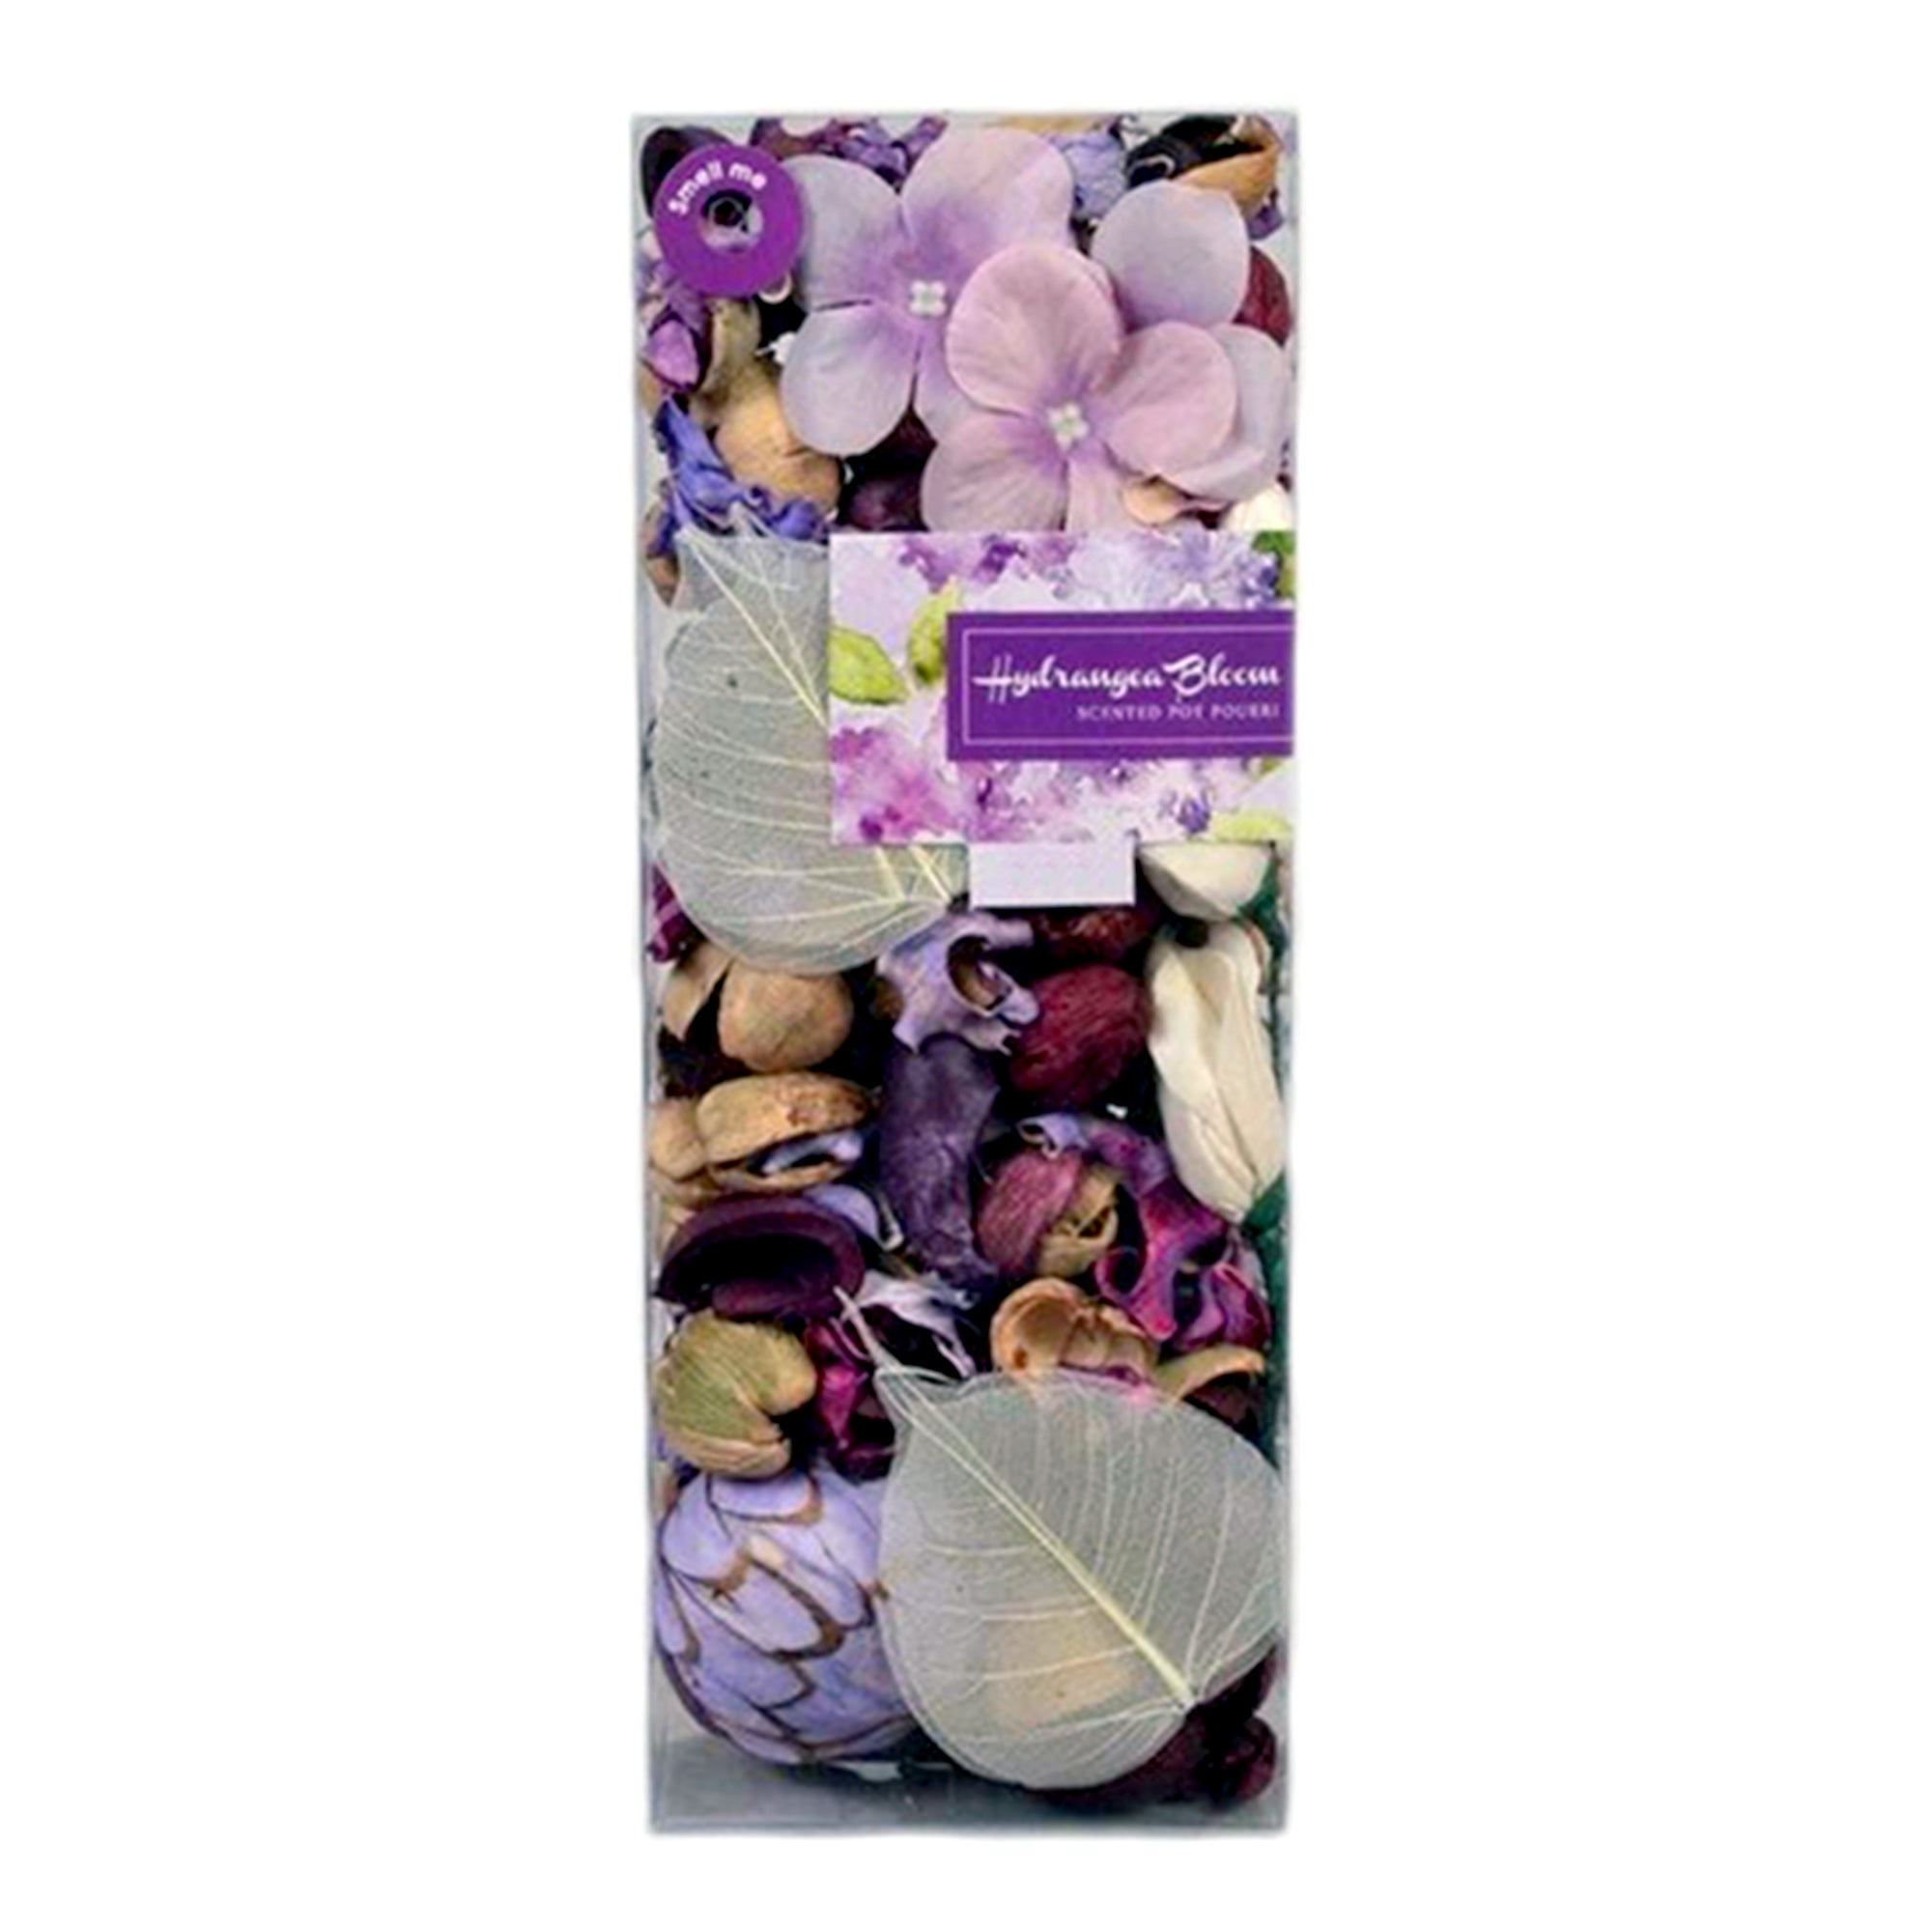 Watercolour Hydrangea Bloom Pot Pourri